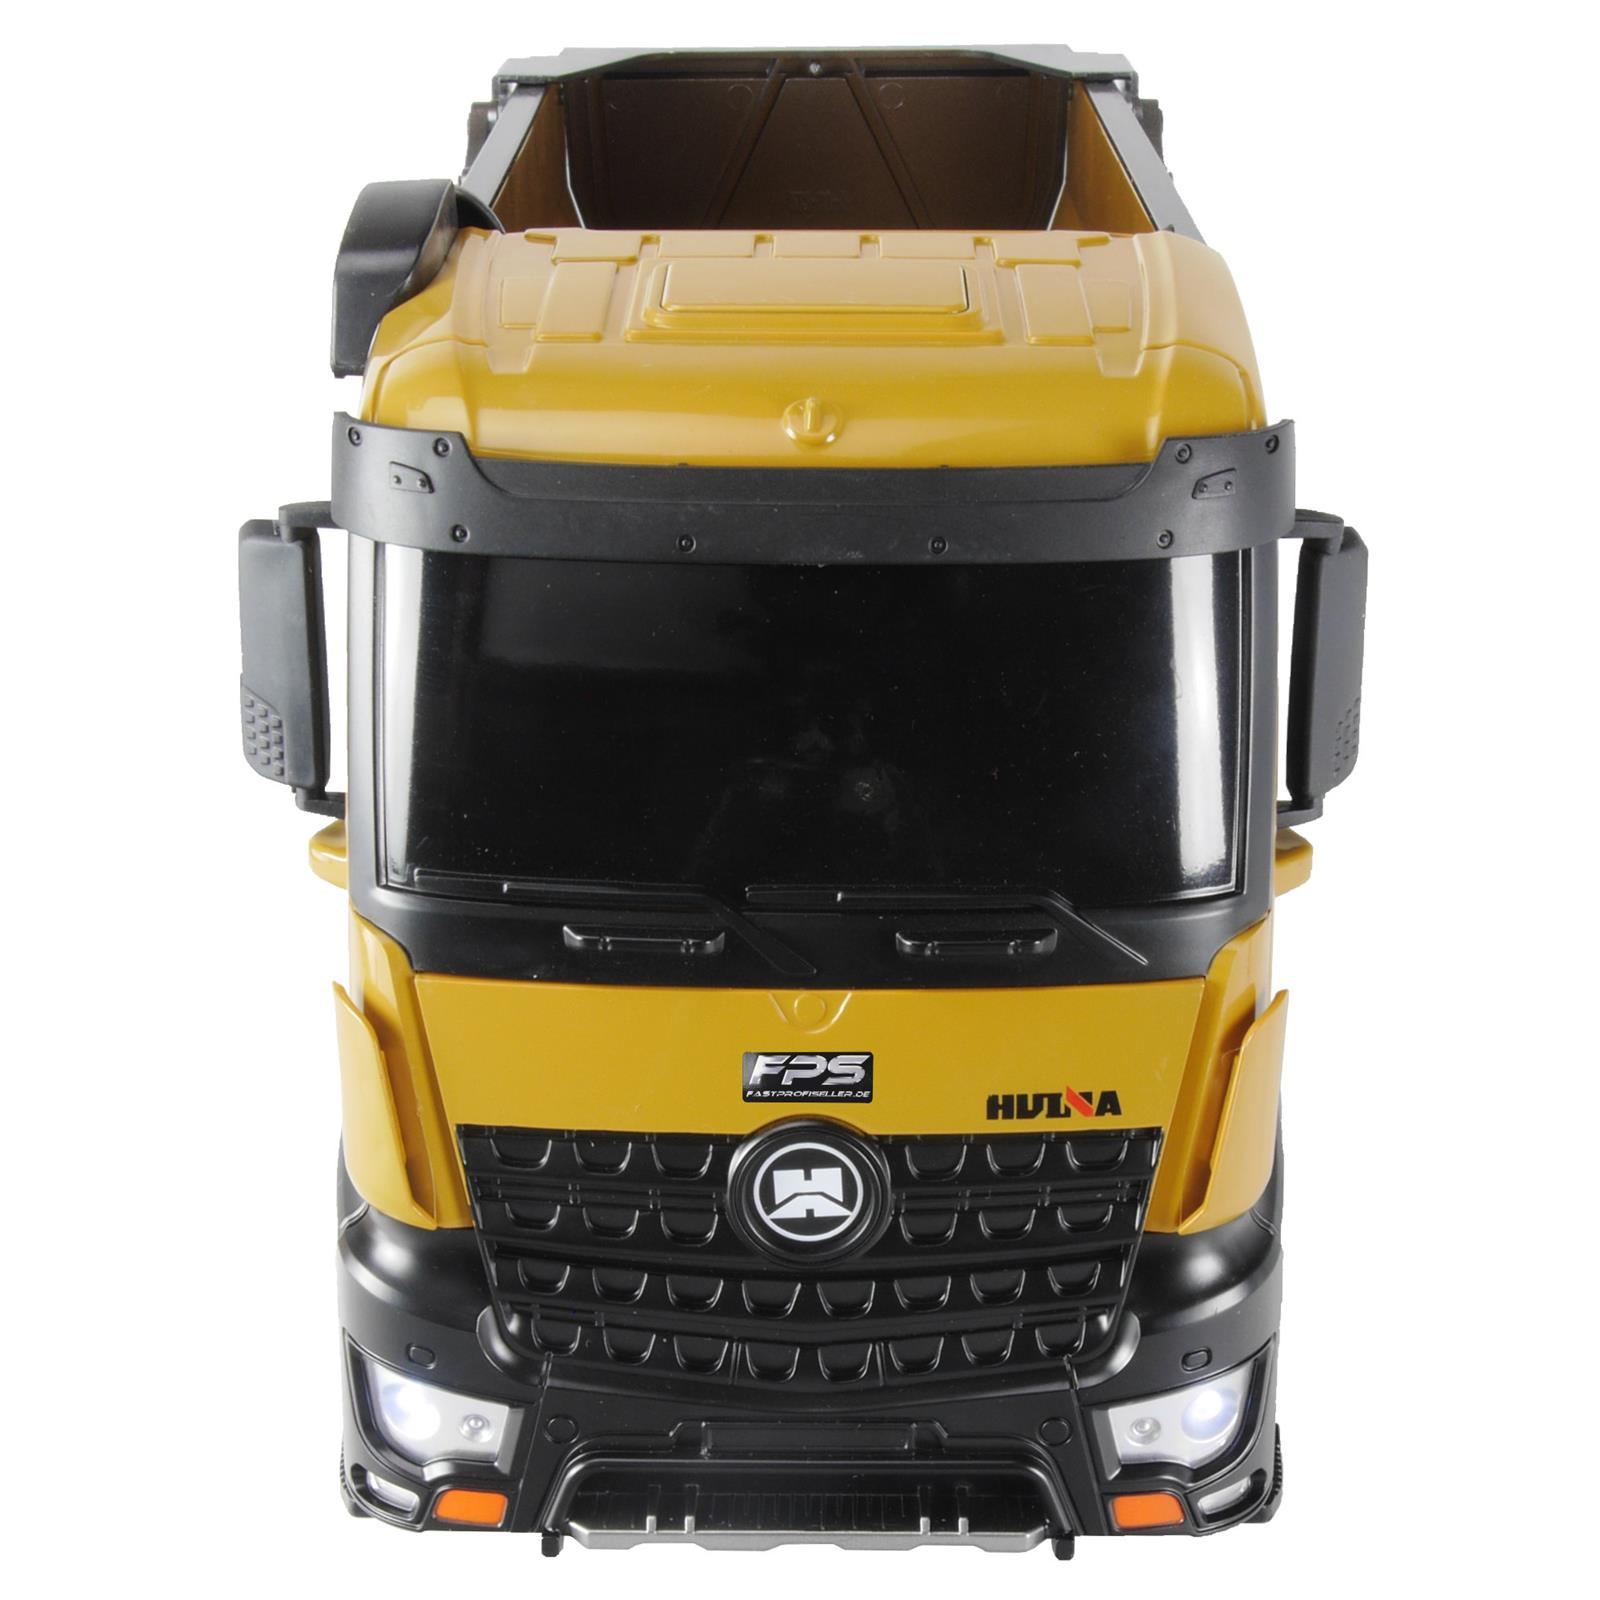 FPS Bundle RC LKW 1:14 Front